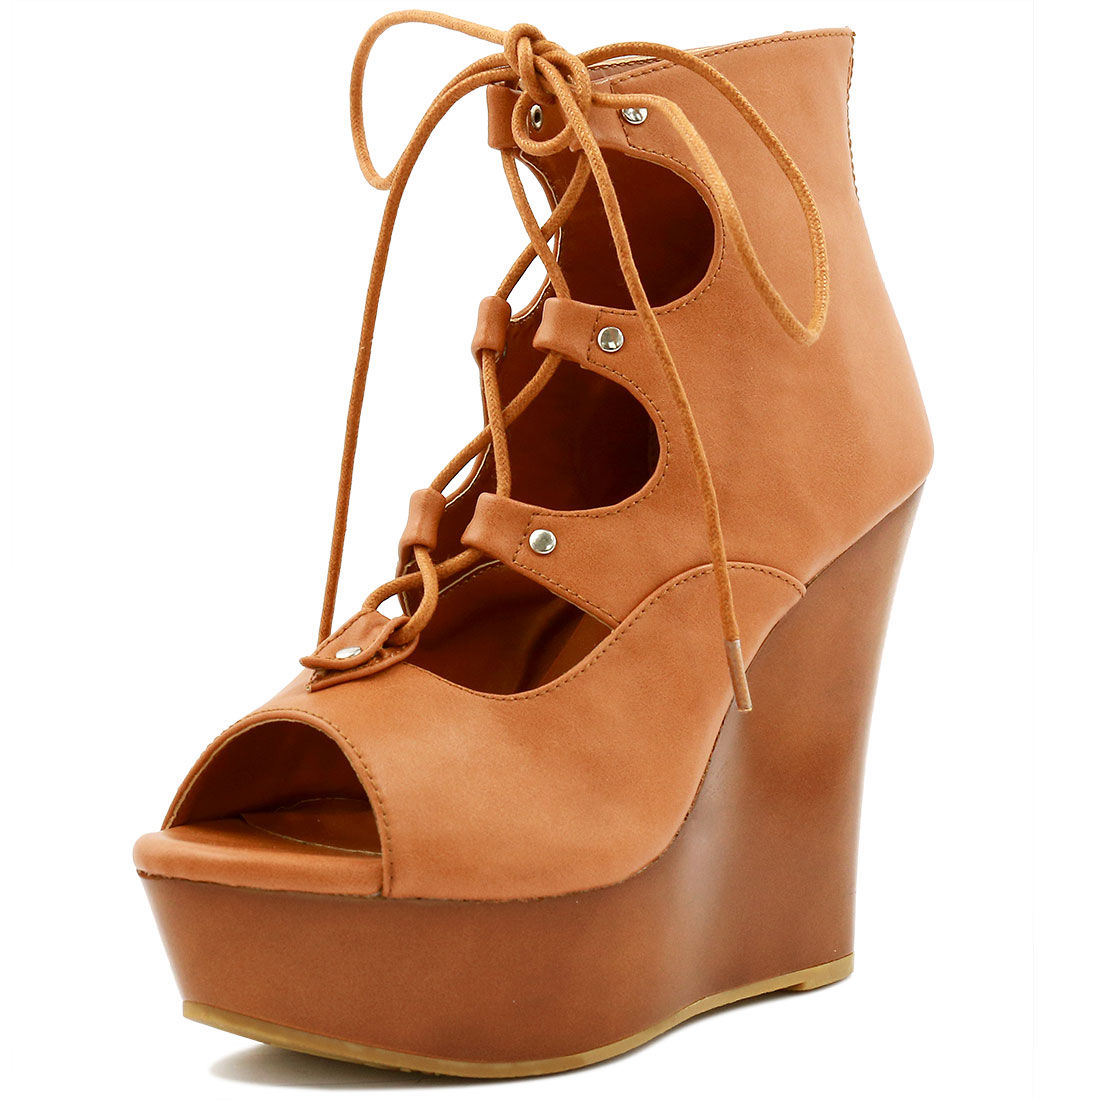 Woman Peep Toe Lace-Up Cutout Platform Wedge Sandals Brown US 6